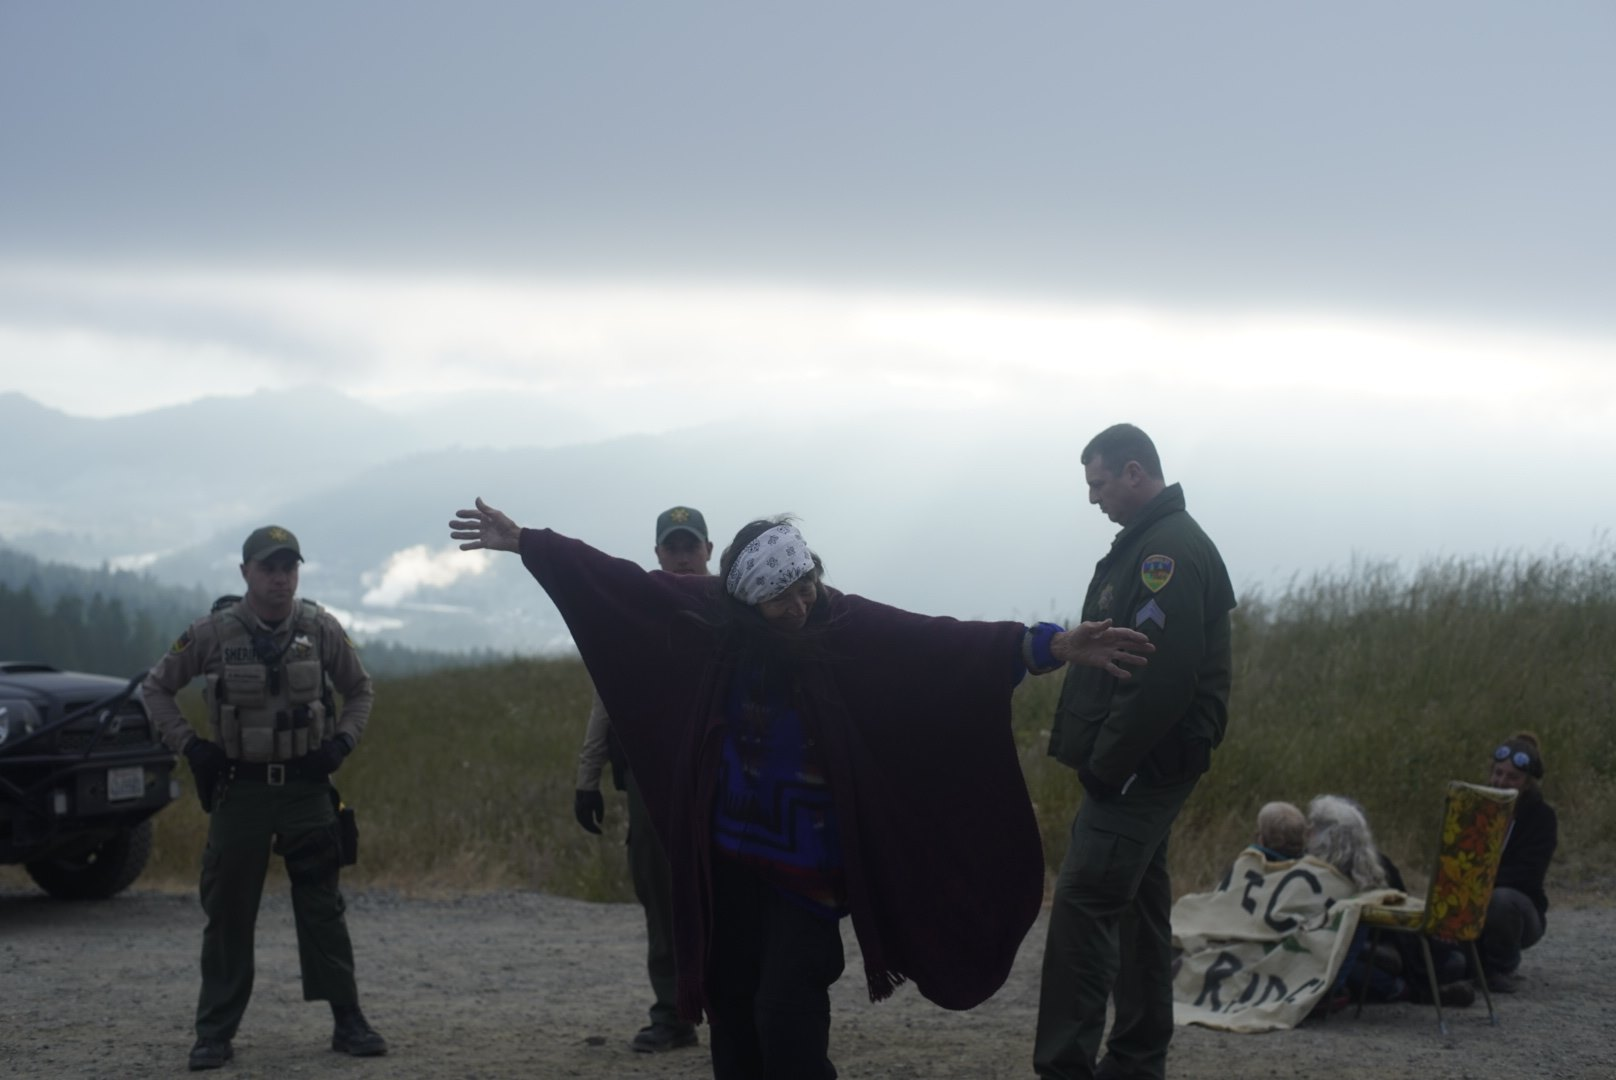 HEADWATERS ACTIVISTS JOIN YOUTH TO PROTECT RAINBOW RIDGE! -